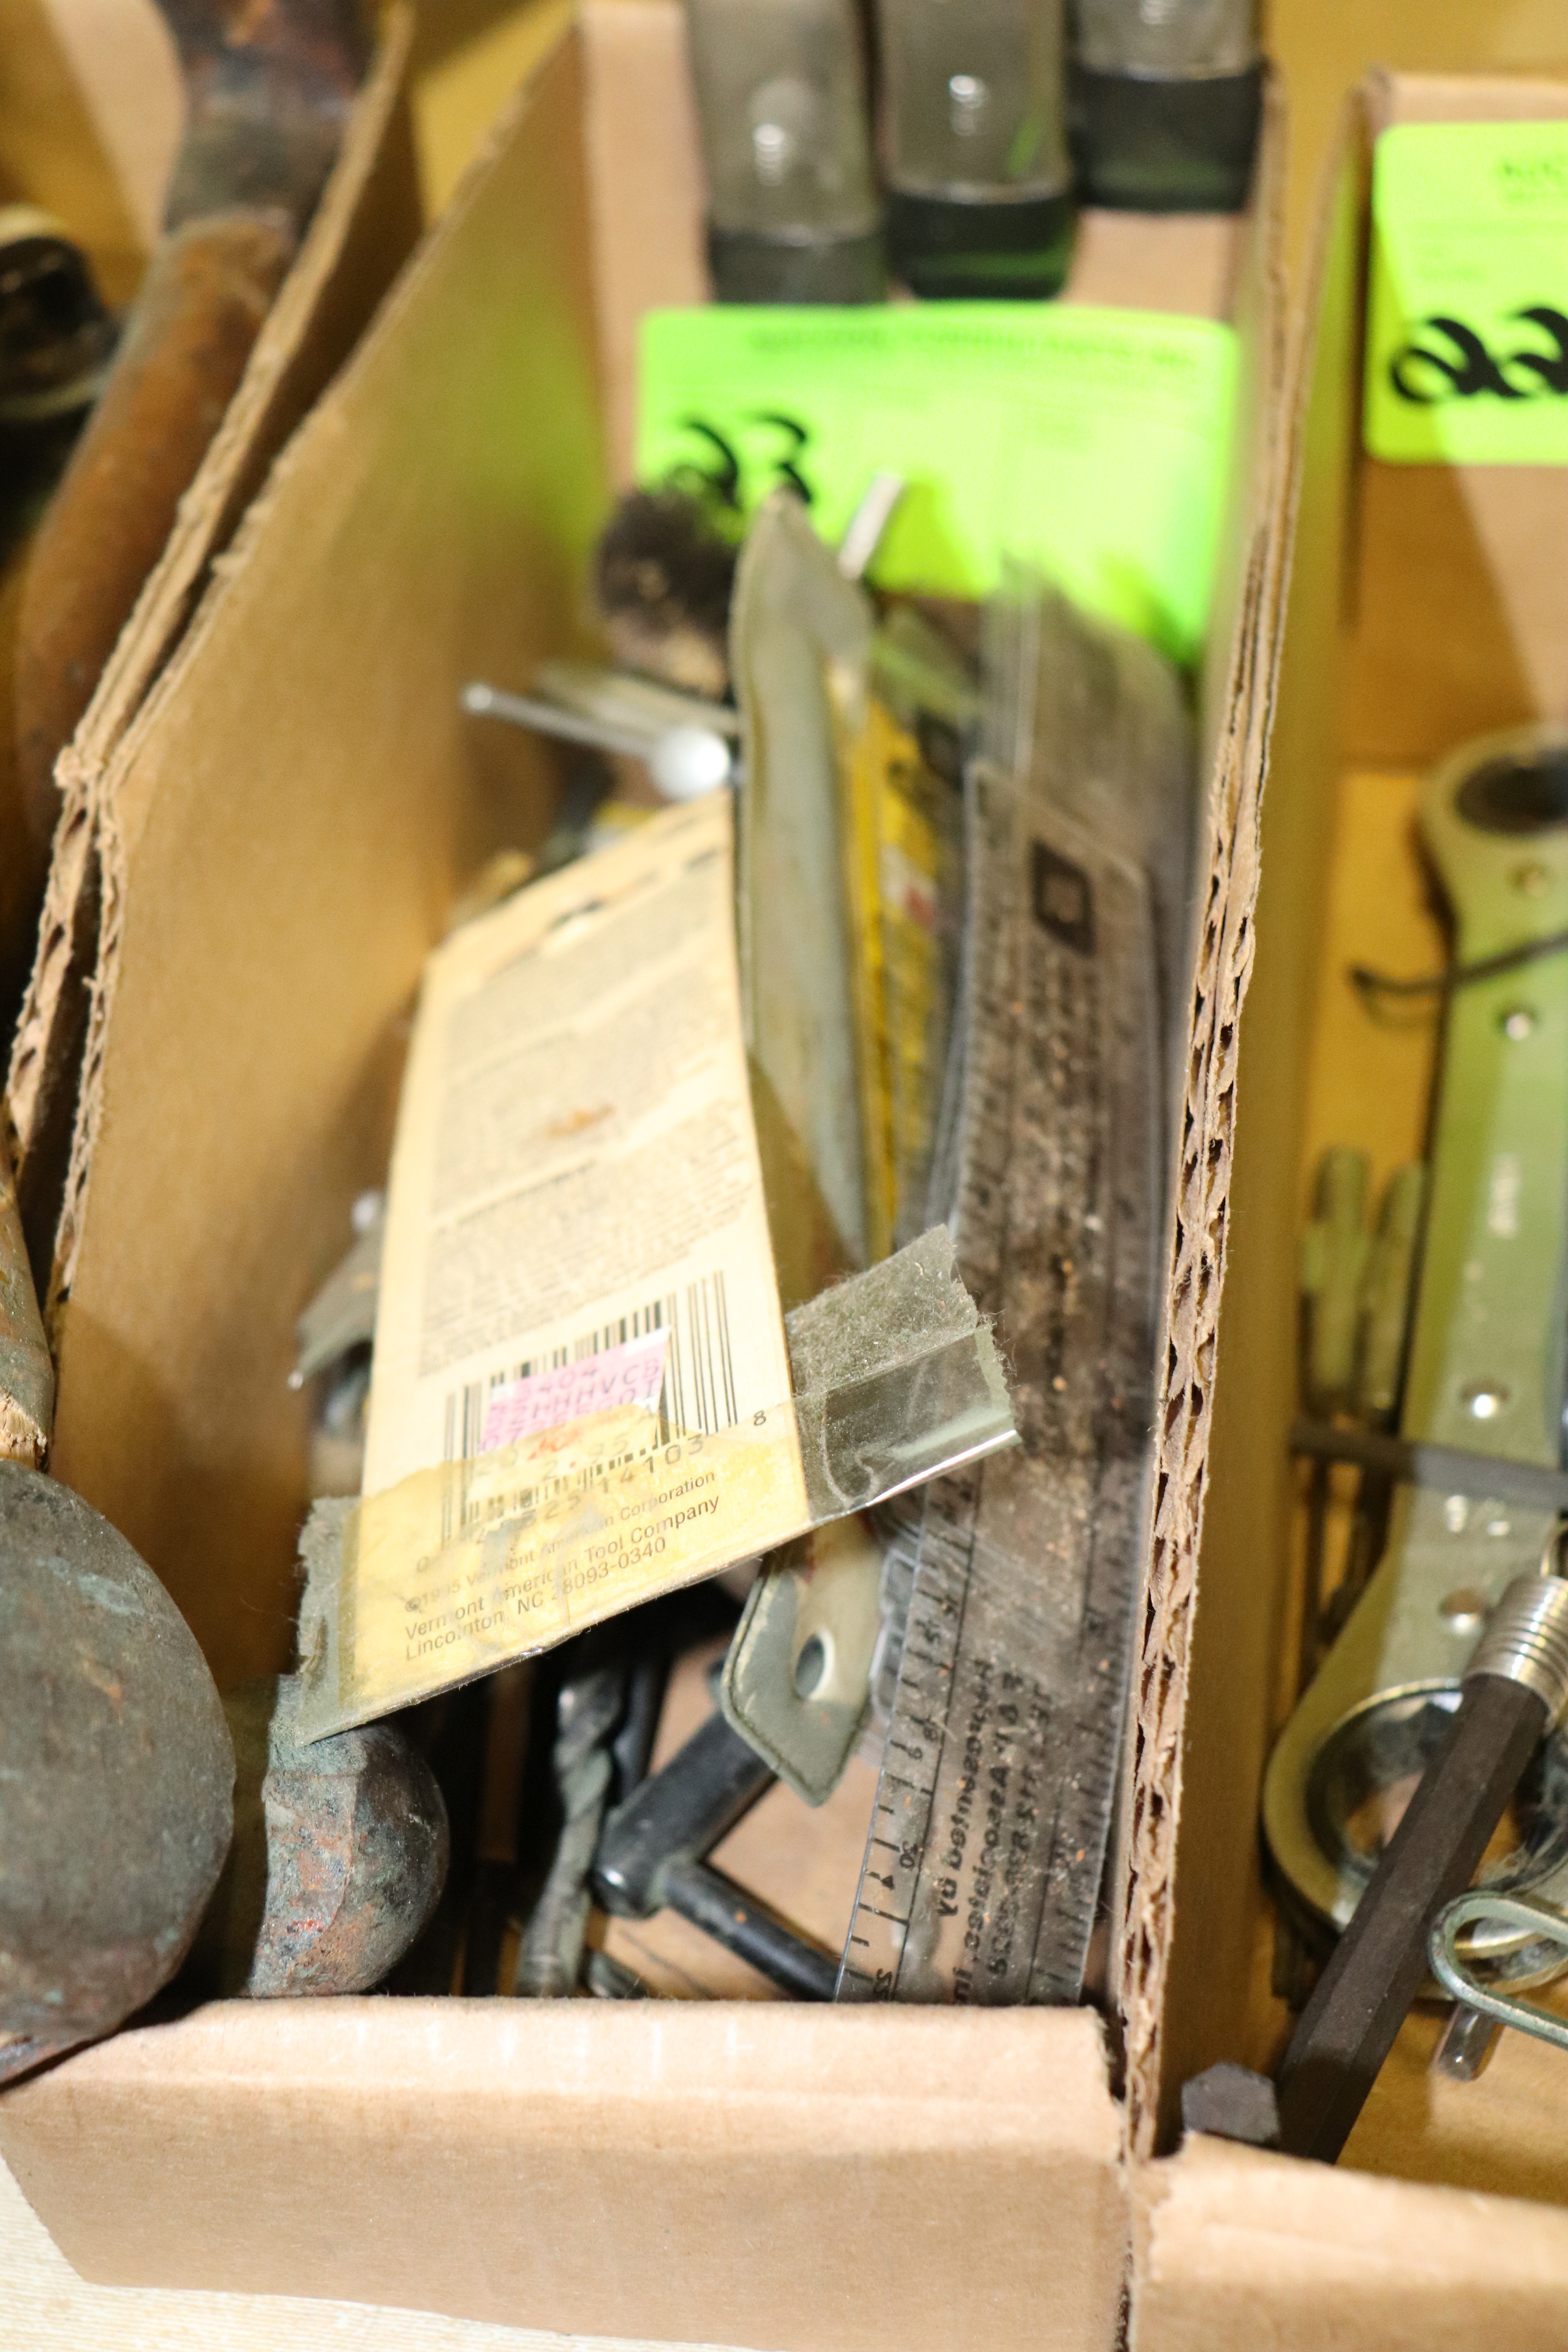 Lot 23 - Clamps, drill bits, and rulers